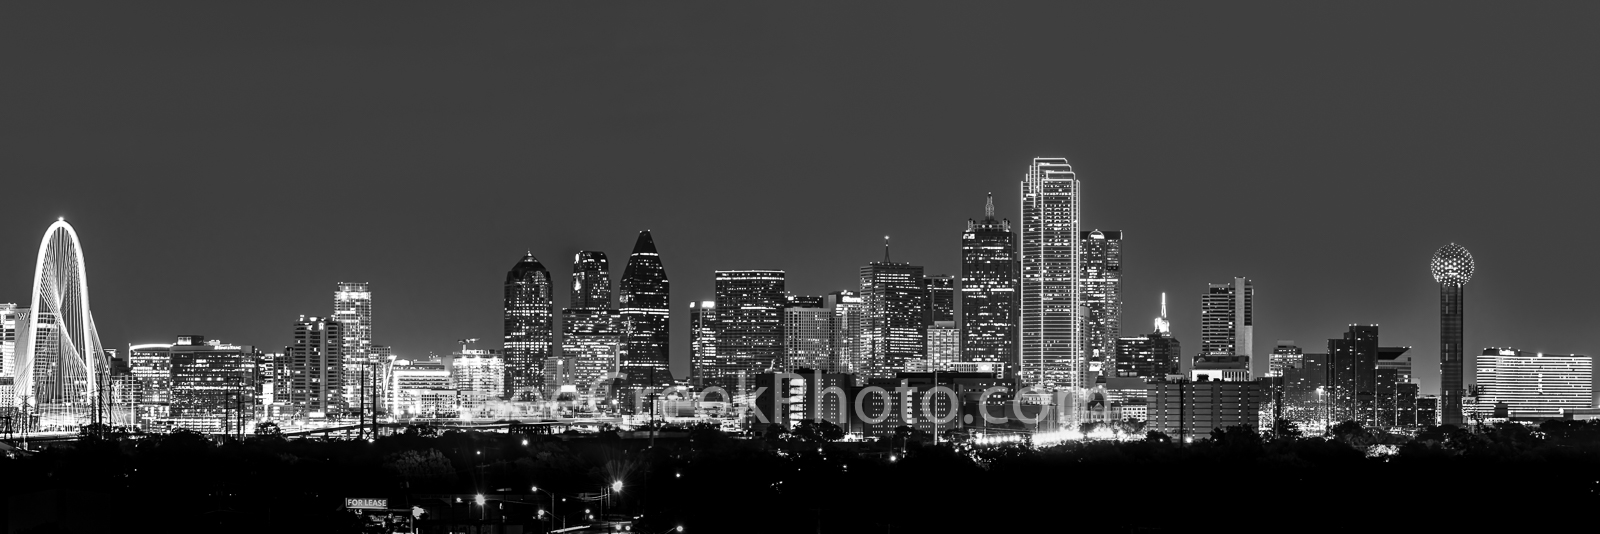 Dallas skyline, black and white, b w, Dallas, skylines, pics of texas, cityscape, panorama, panos, dark, night, iconic, skyscrapers, Margaret Hunt Hill Bridge, Reunion Tower, Bank of America, Omni,, photo